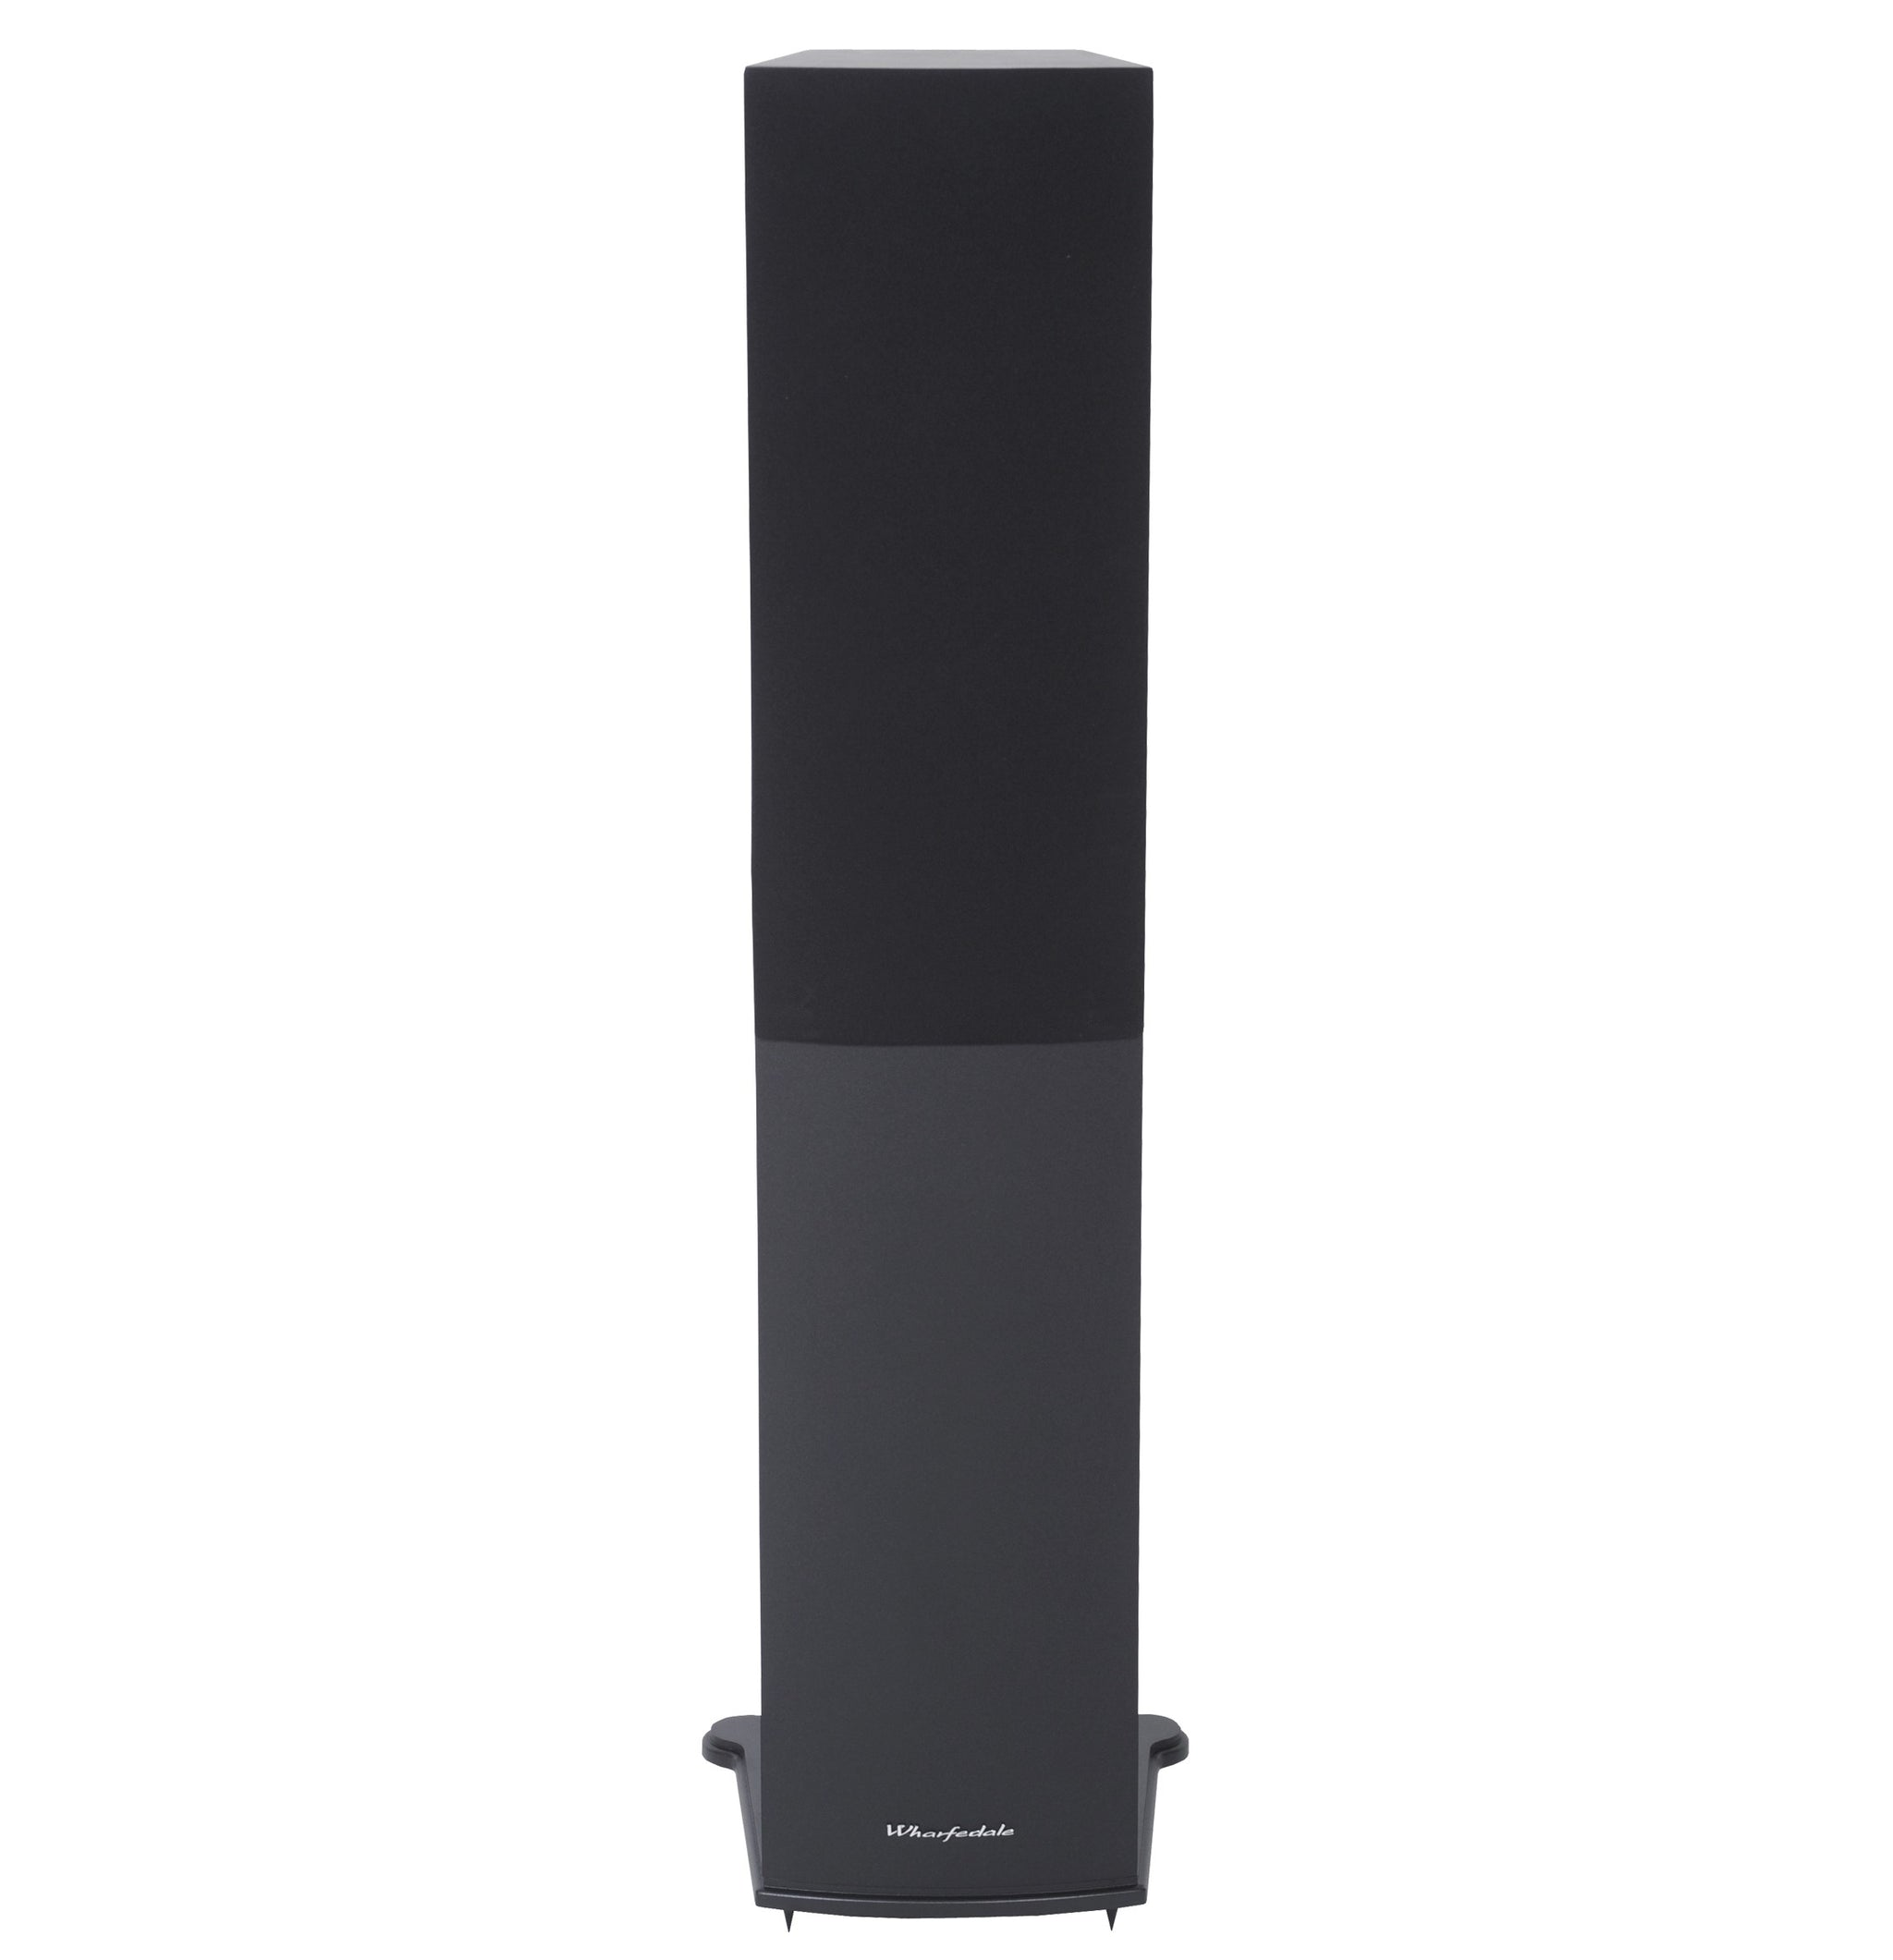 Crystal CR30.5 Floorstanding Speakers